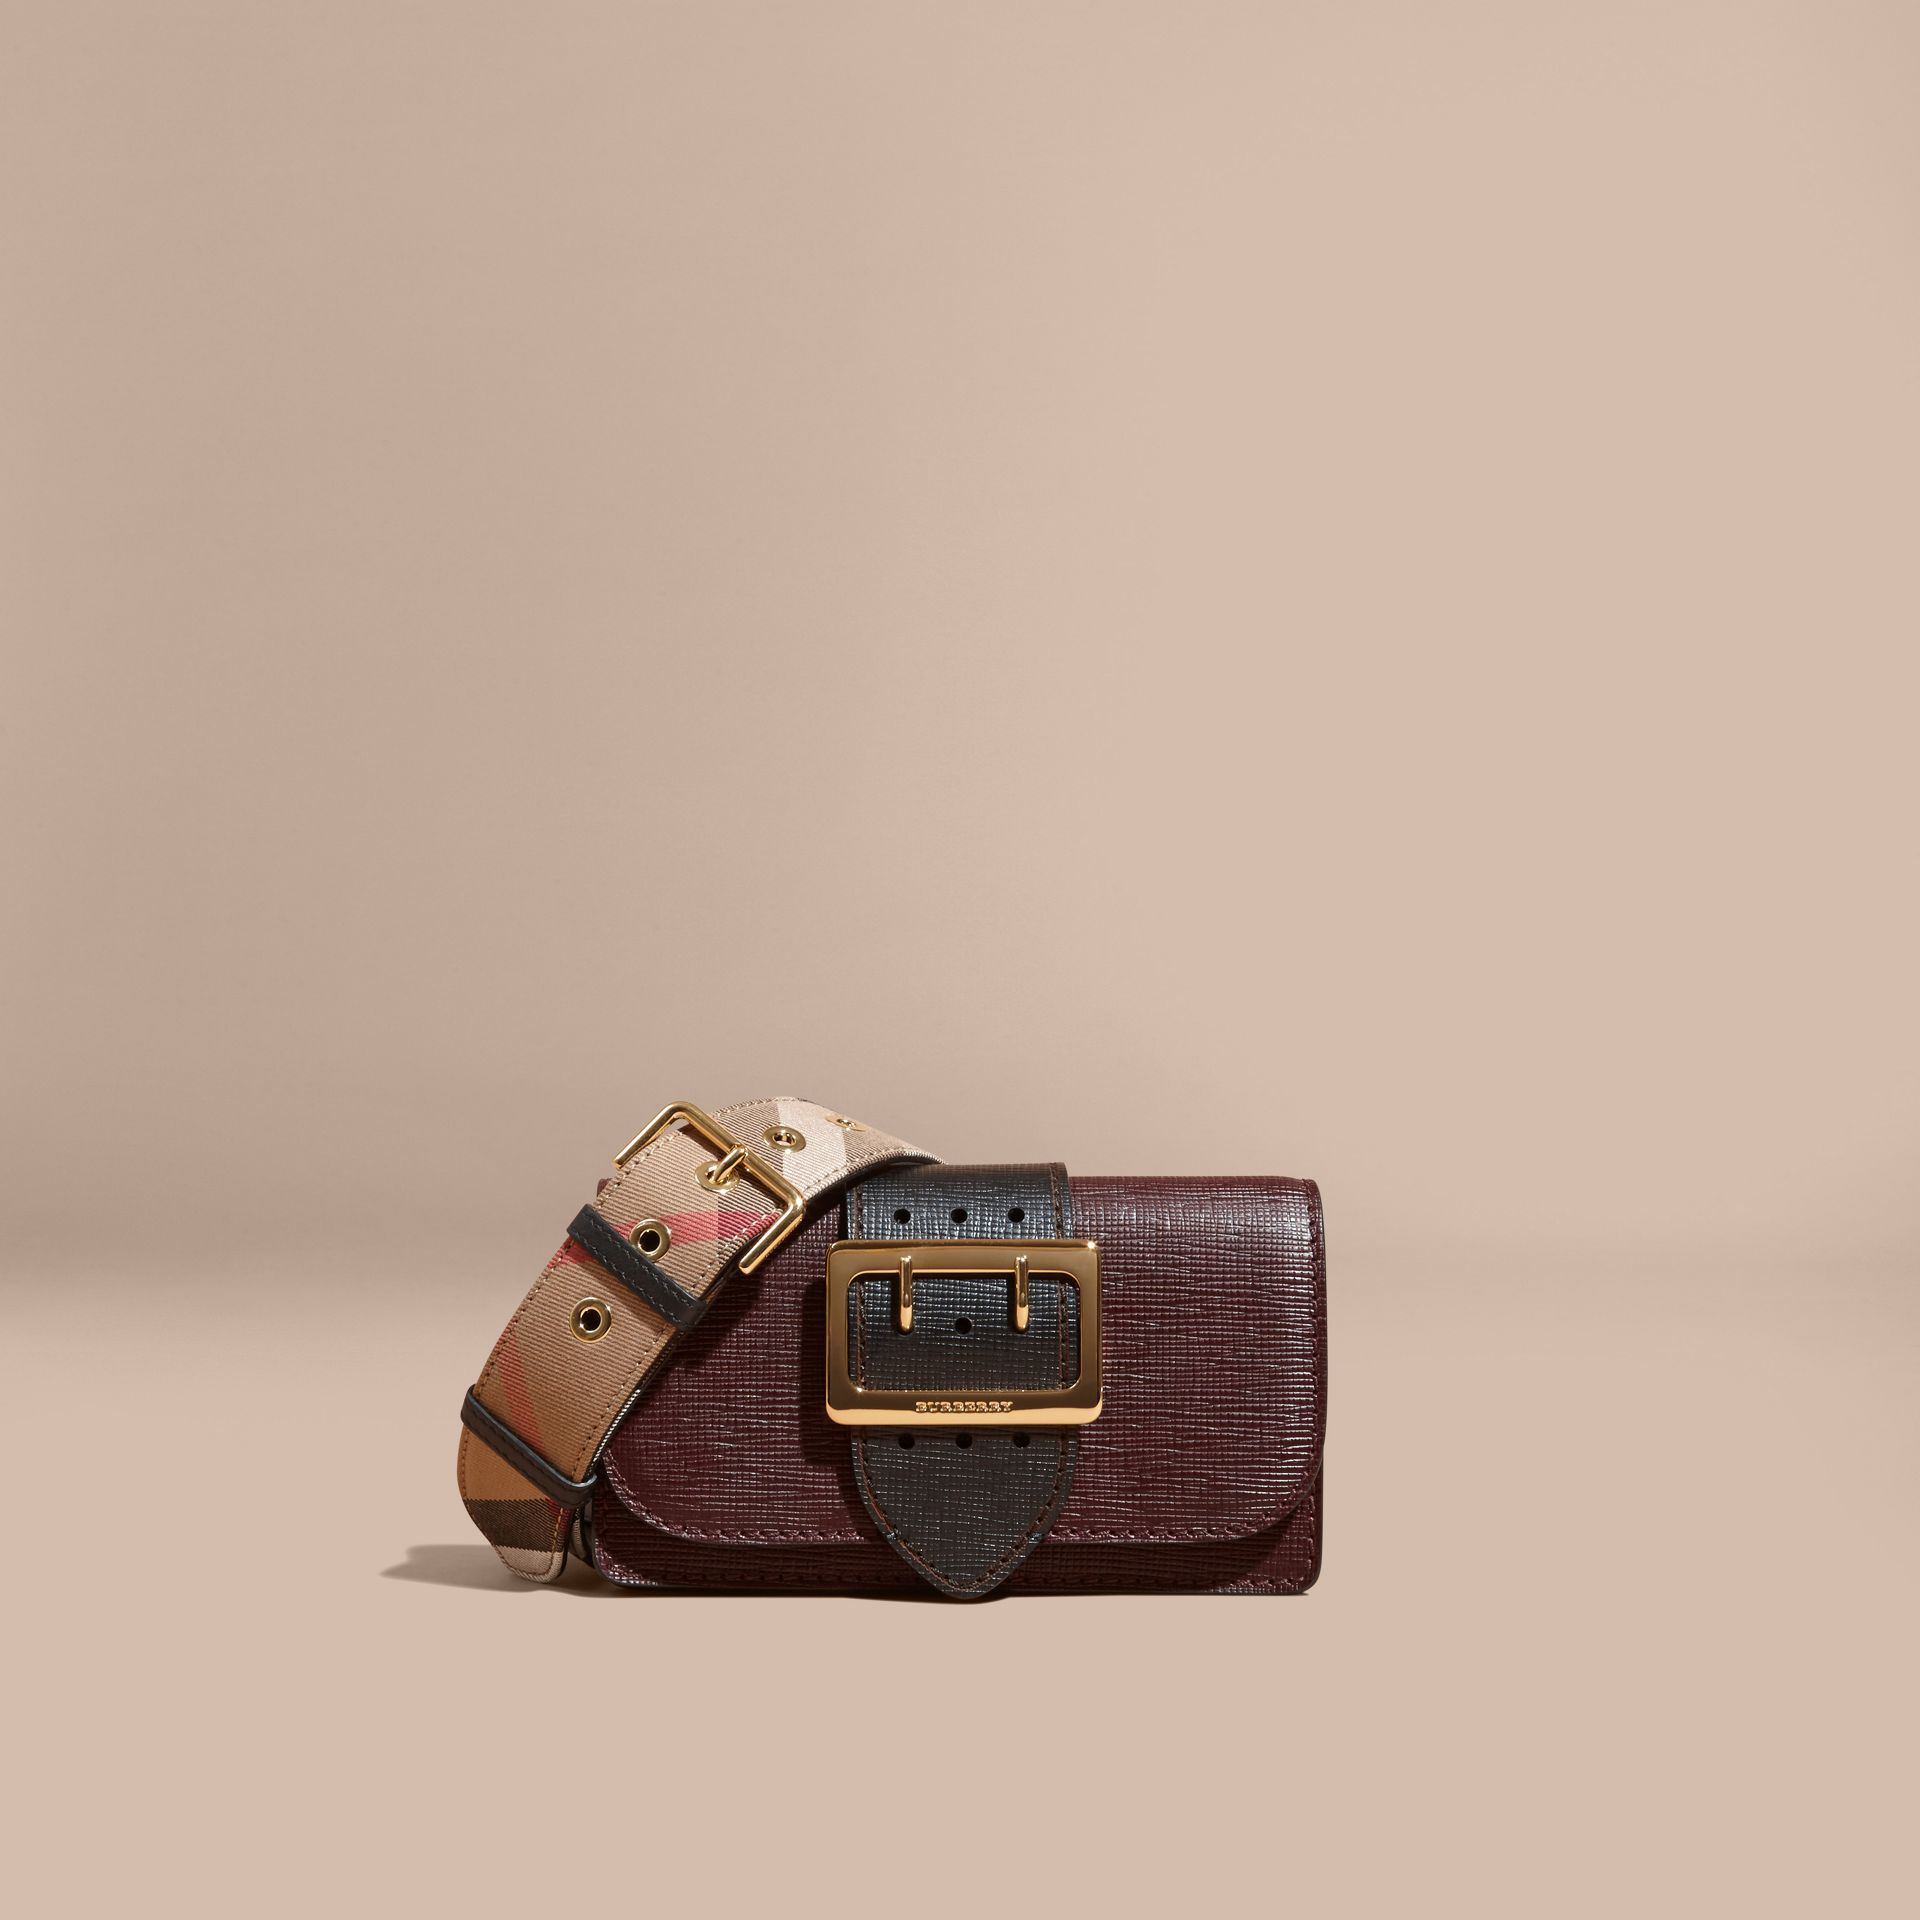 Burgundy/black The Small Buckle Bag in Textured Leather Burgundy/black - gallery image 9